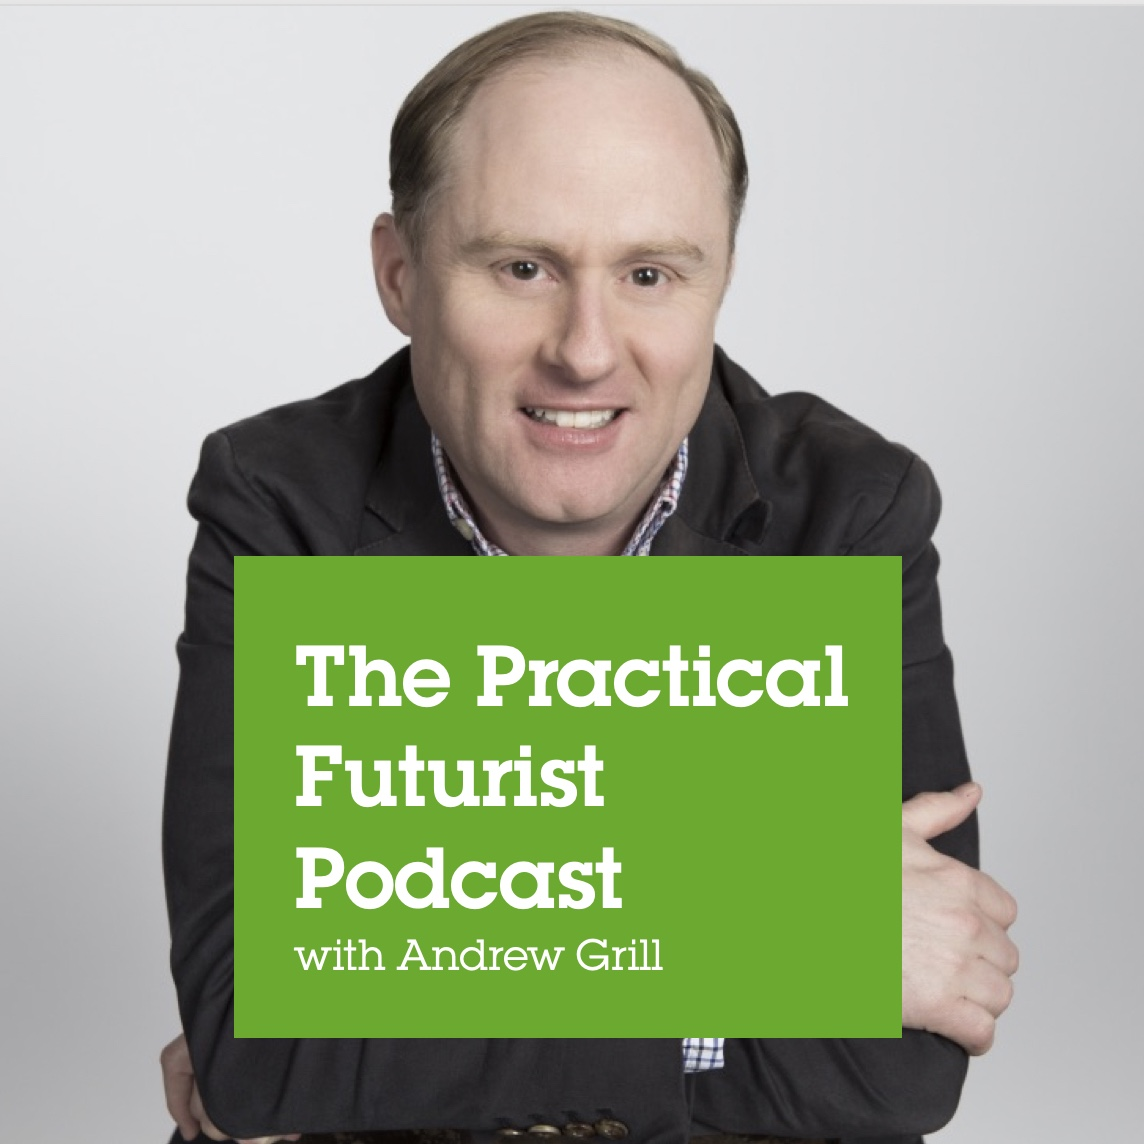 The future of Podcasting with Minter Dial